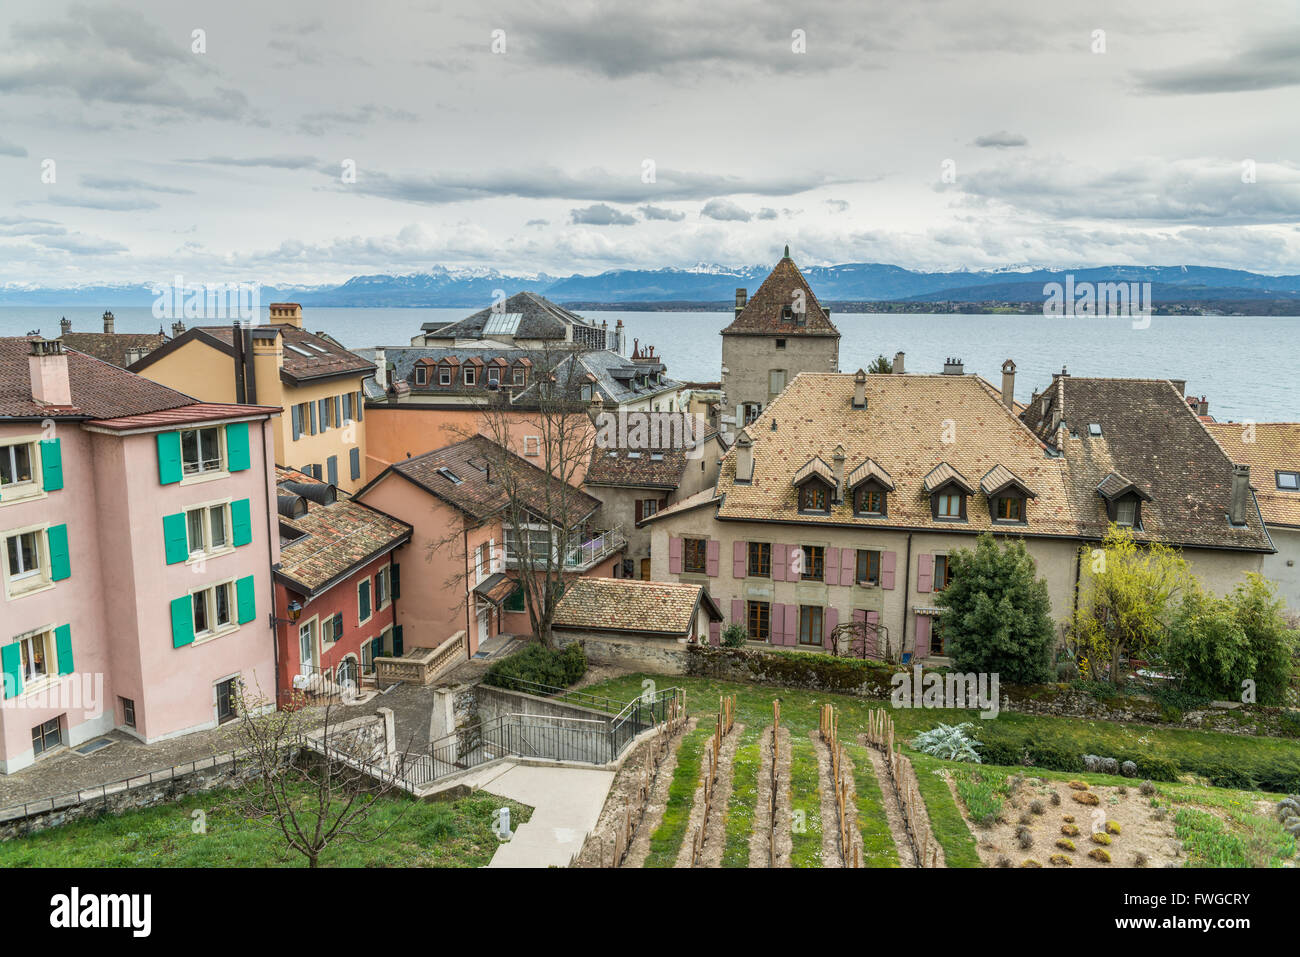 View over rooftops and Lac Leman, in Nyon, Switzerland. - Stock Image